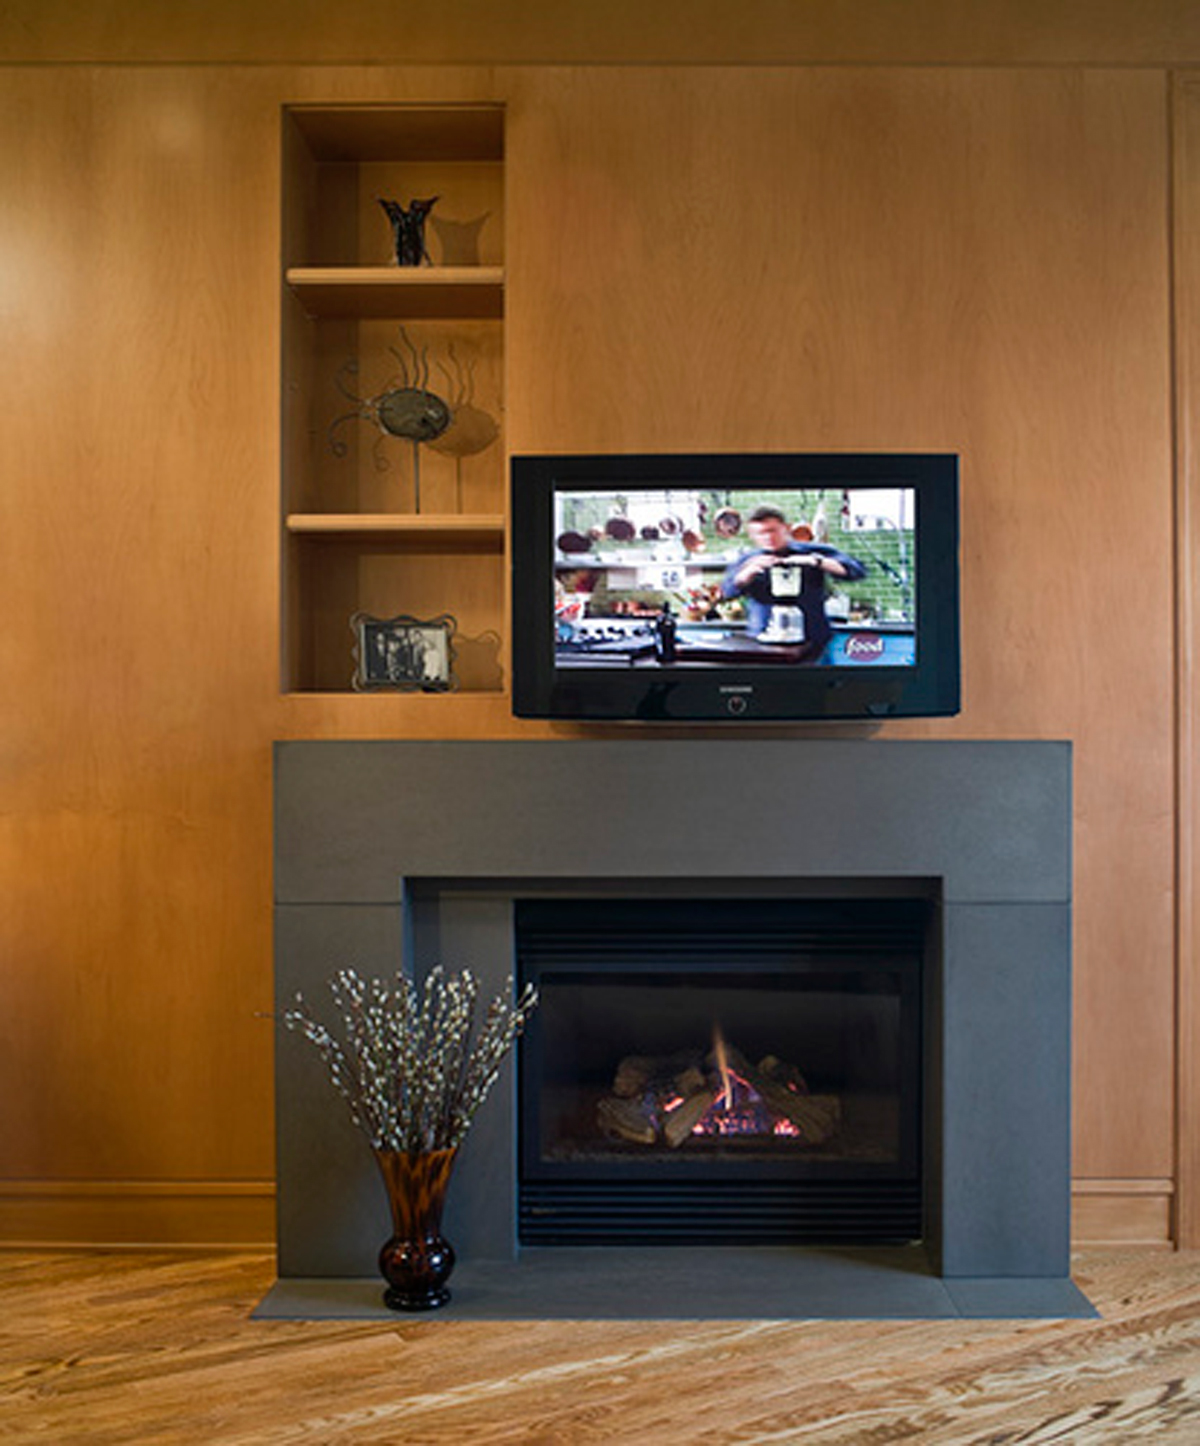 contemporary fireplace designs layouts - Iroonie.com